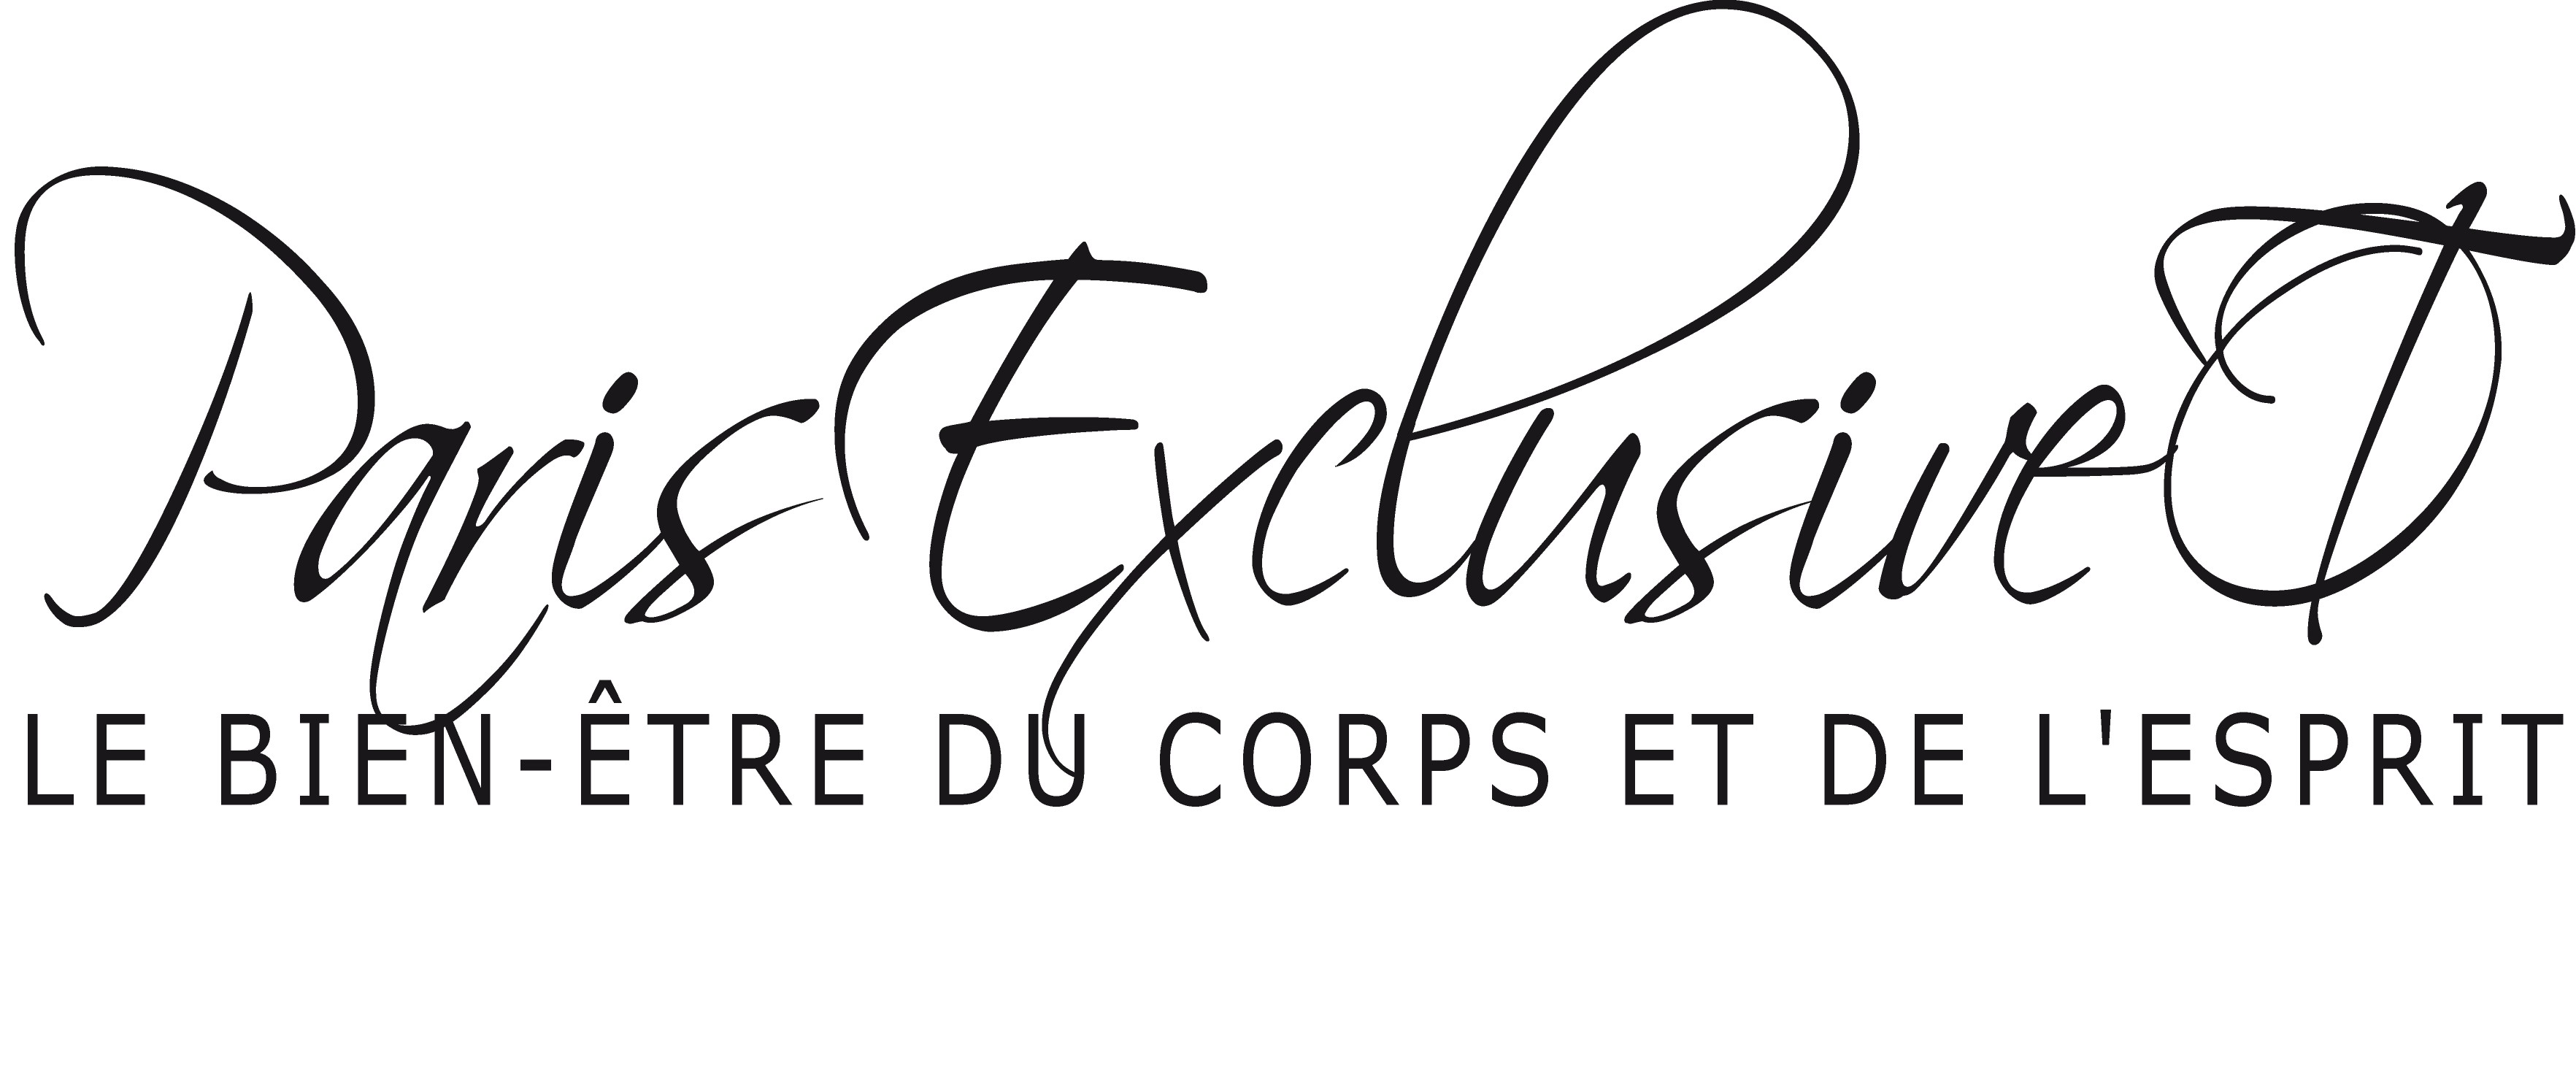 Paris Exclusive Cosmetics vente de cosmétique Bio Marins certifiés écocert